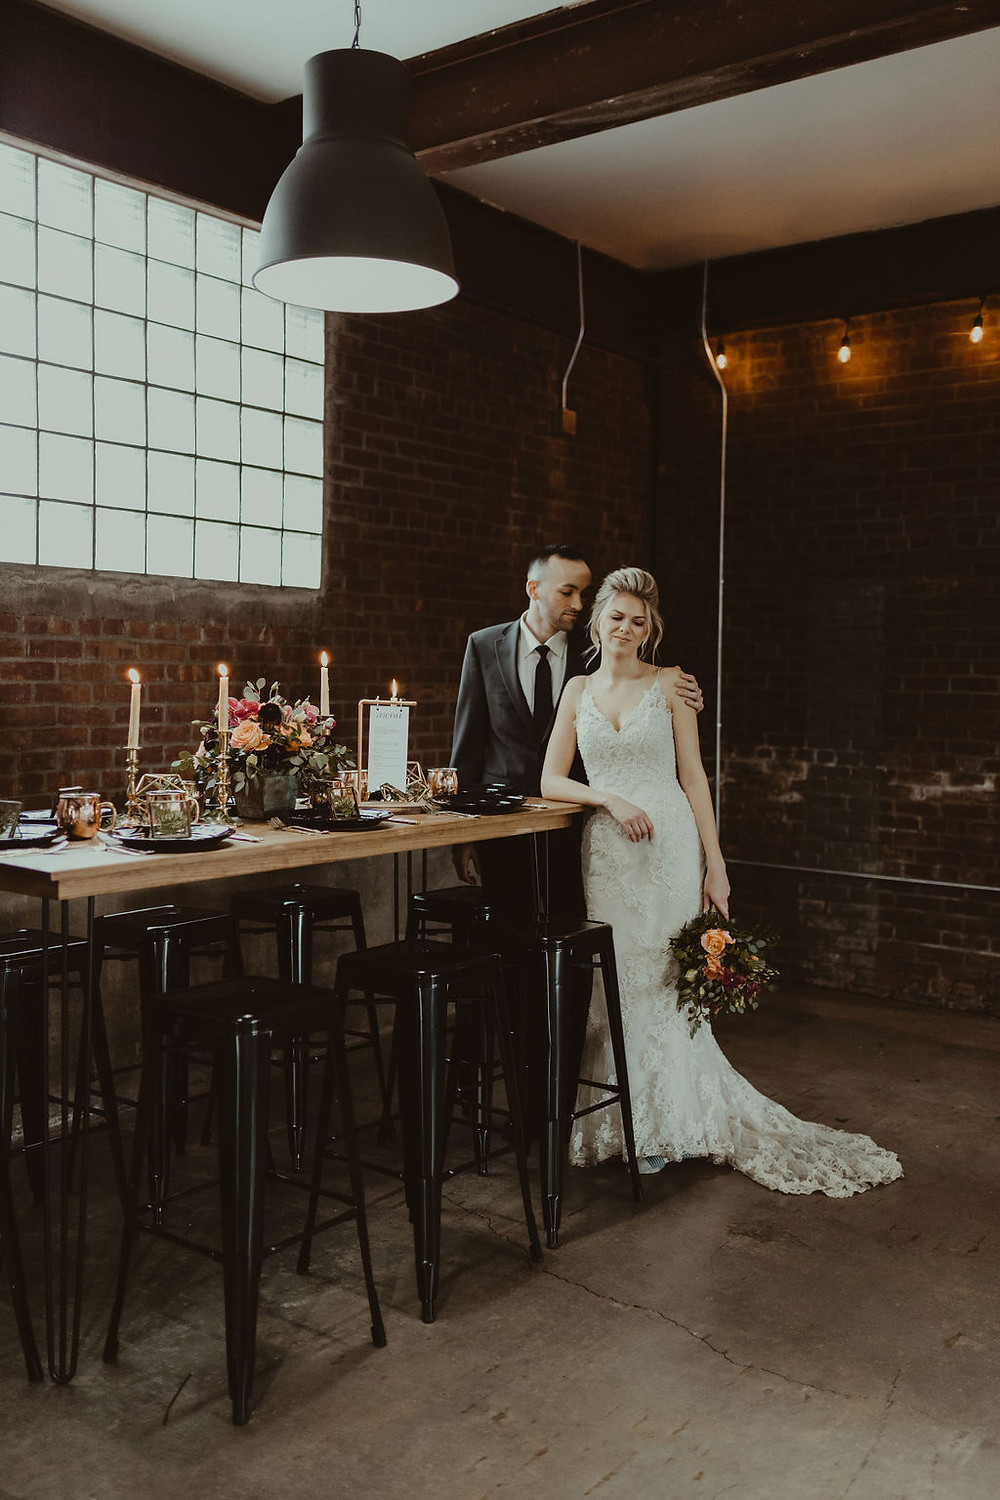 Copper Wedding Inspiration: Industrial & Copper Styled Wedding Shoot at Smith's Market featured on Pretty Little Vintage Co.